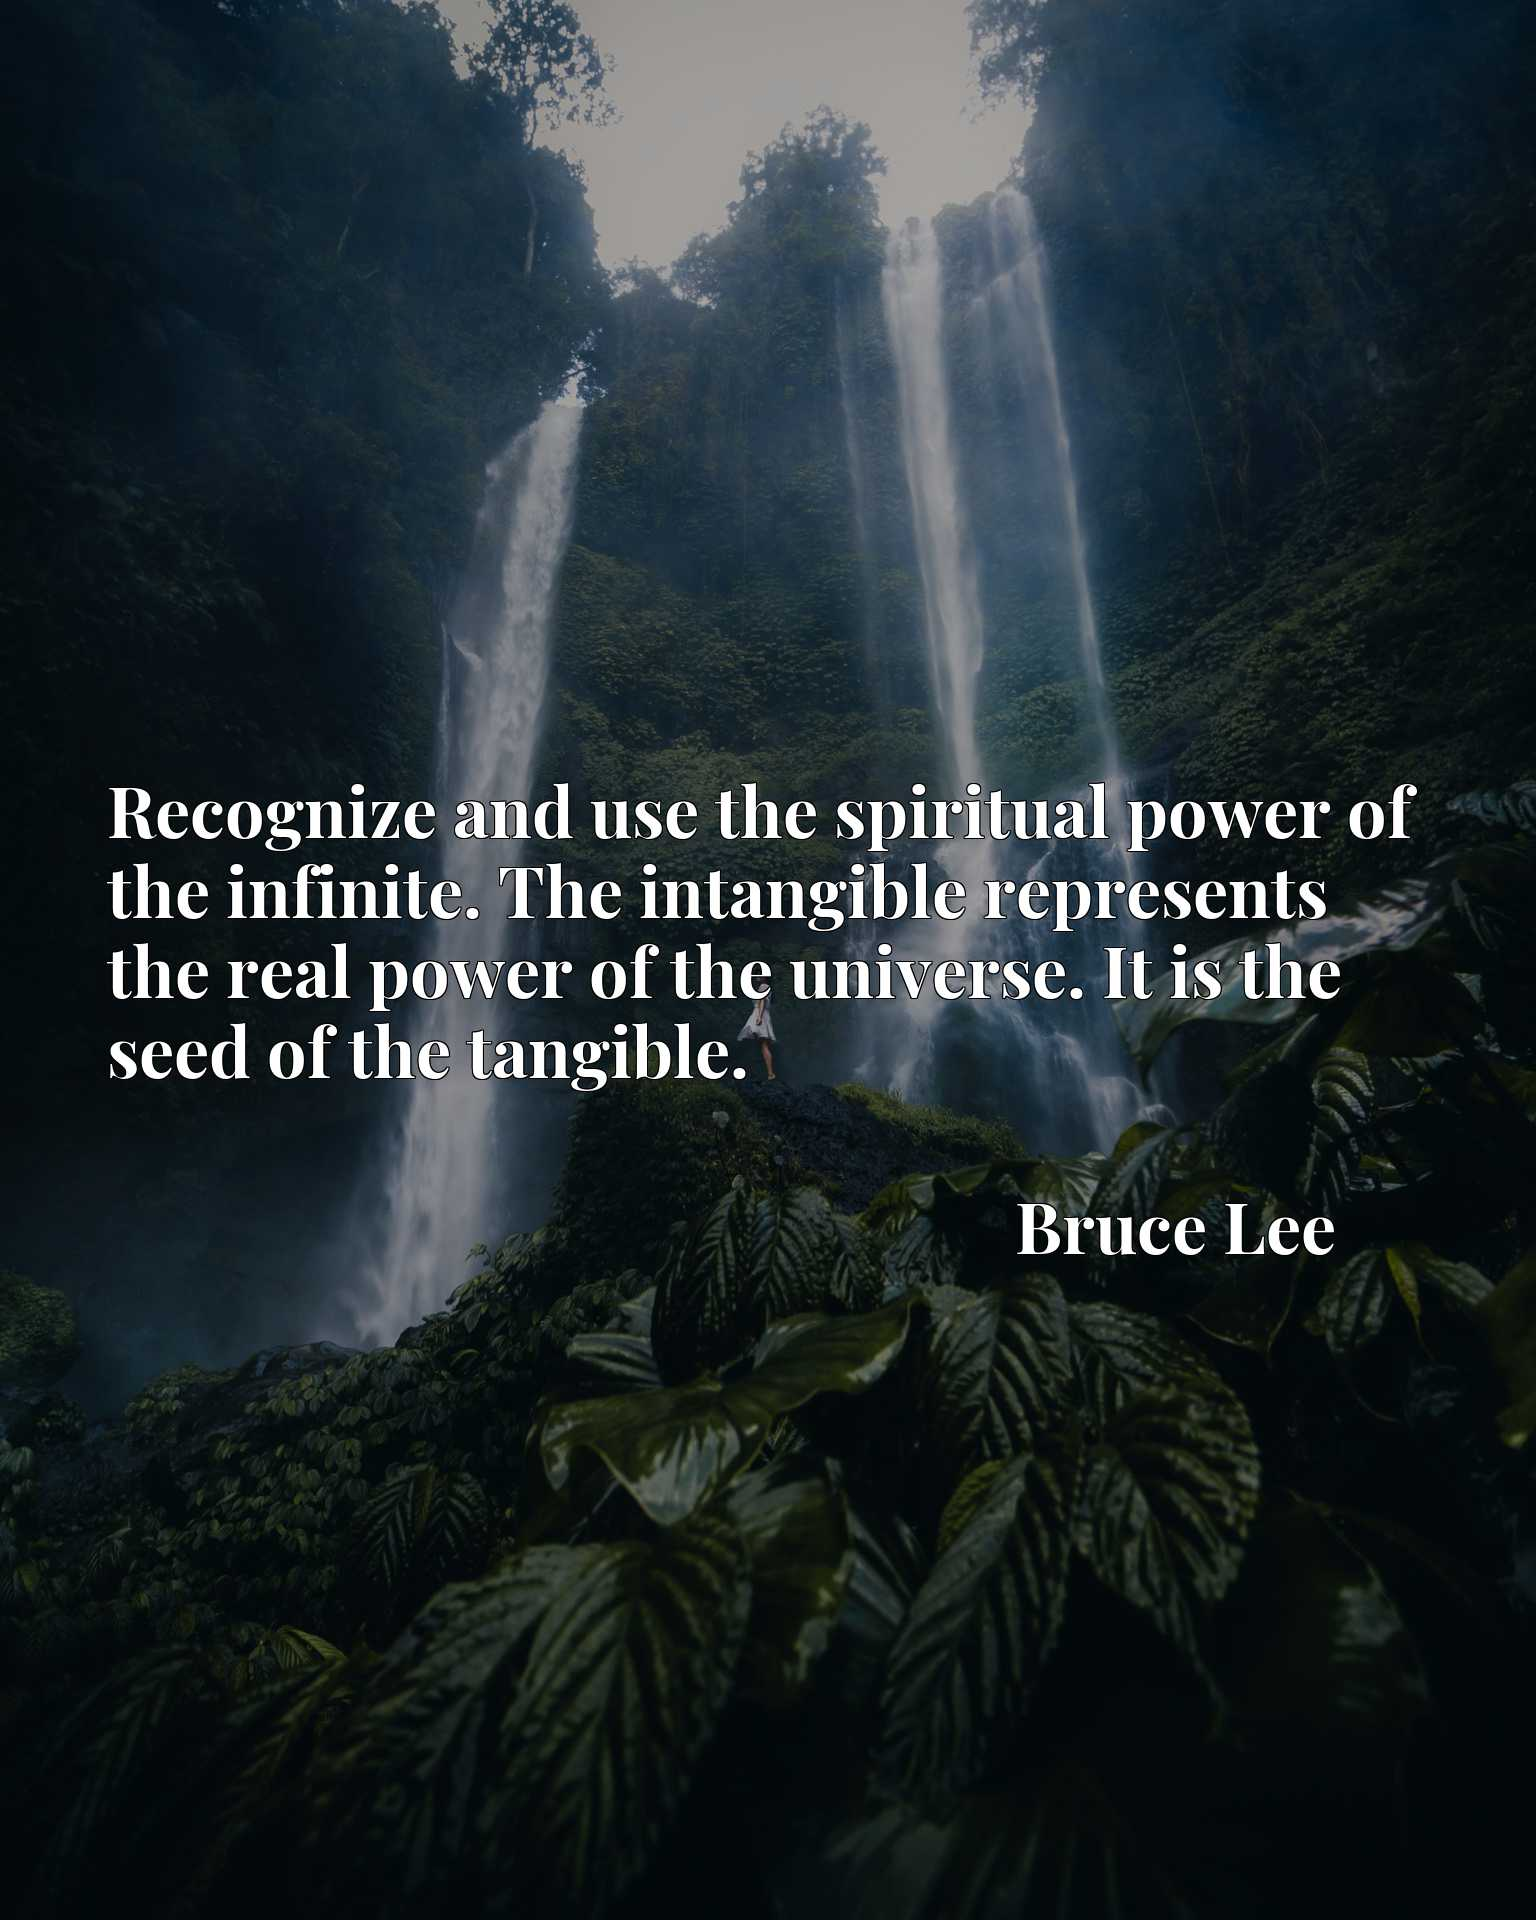 Recognize and use the spiritual power of the infinite. The intangible represents the real power of the universe. It is the seed of the tangible.